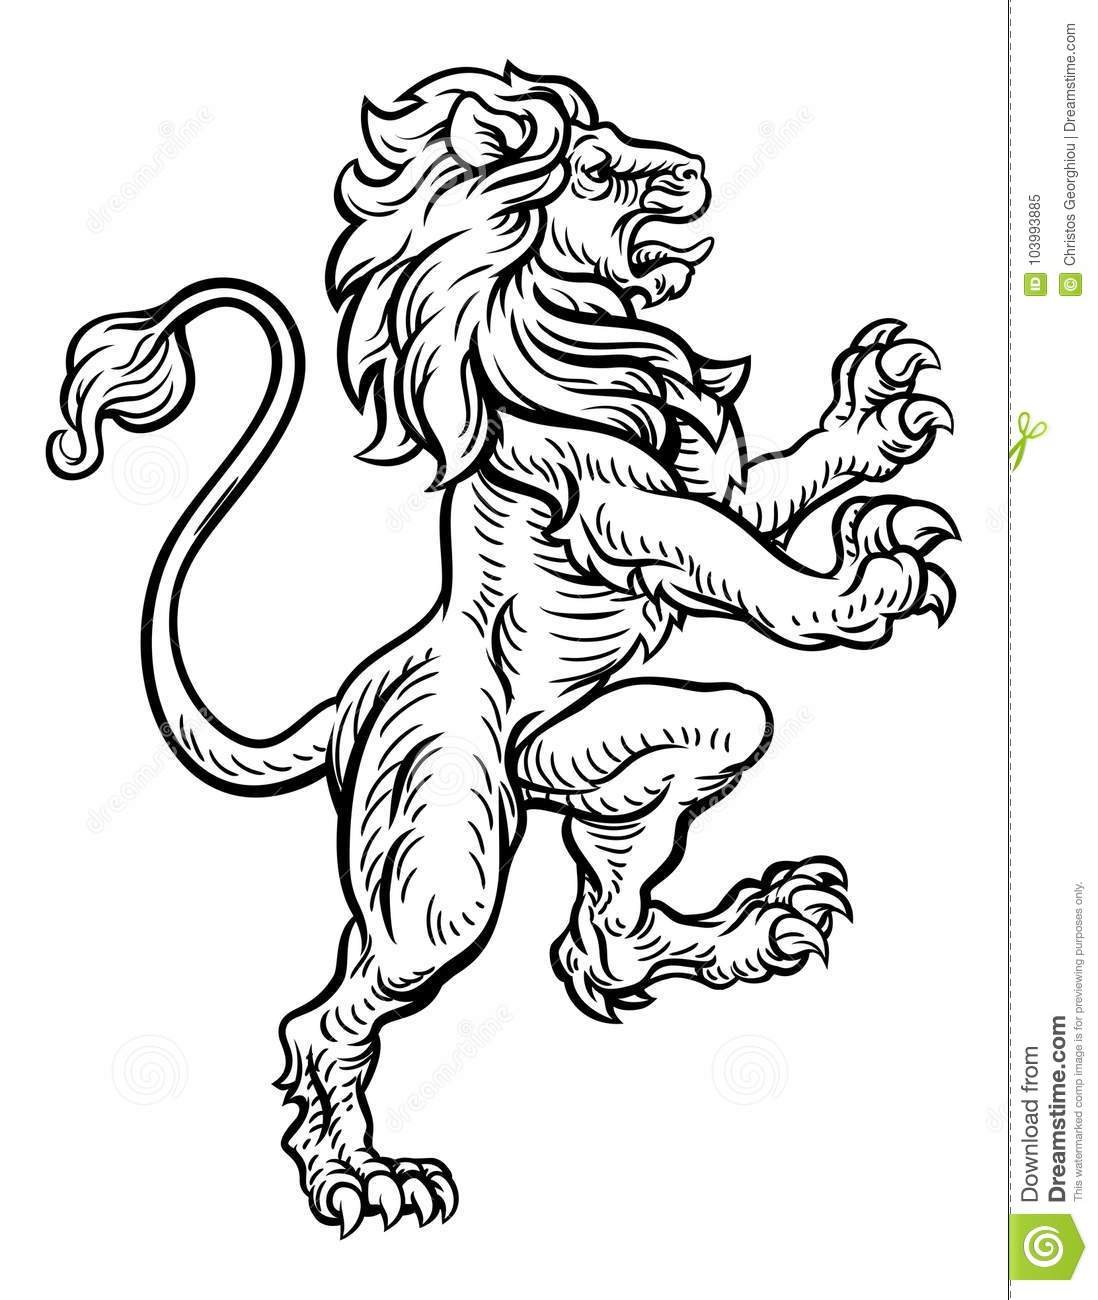 f86e096c095c0 A lion rampant standing on its back legs from a coat of arms or medieval  heraldic crest